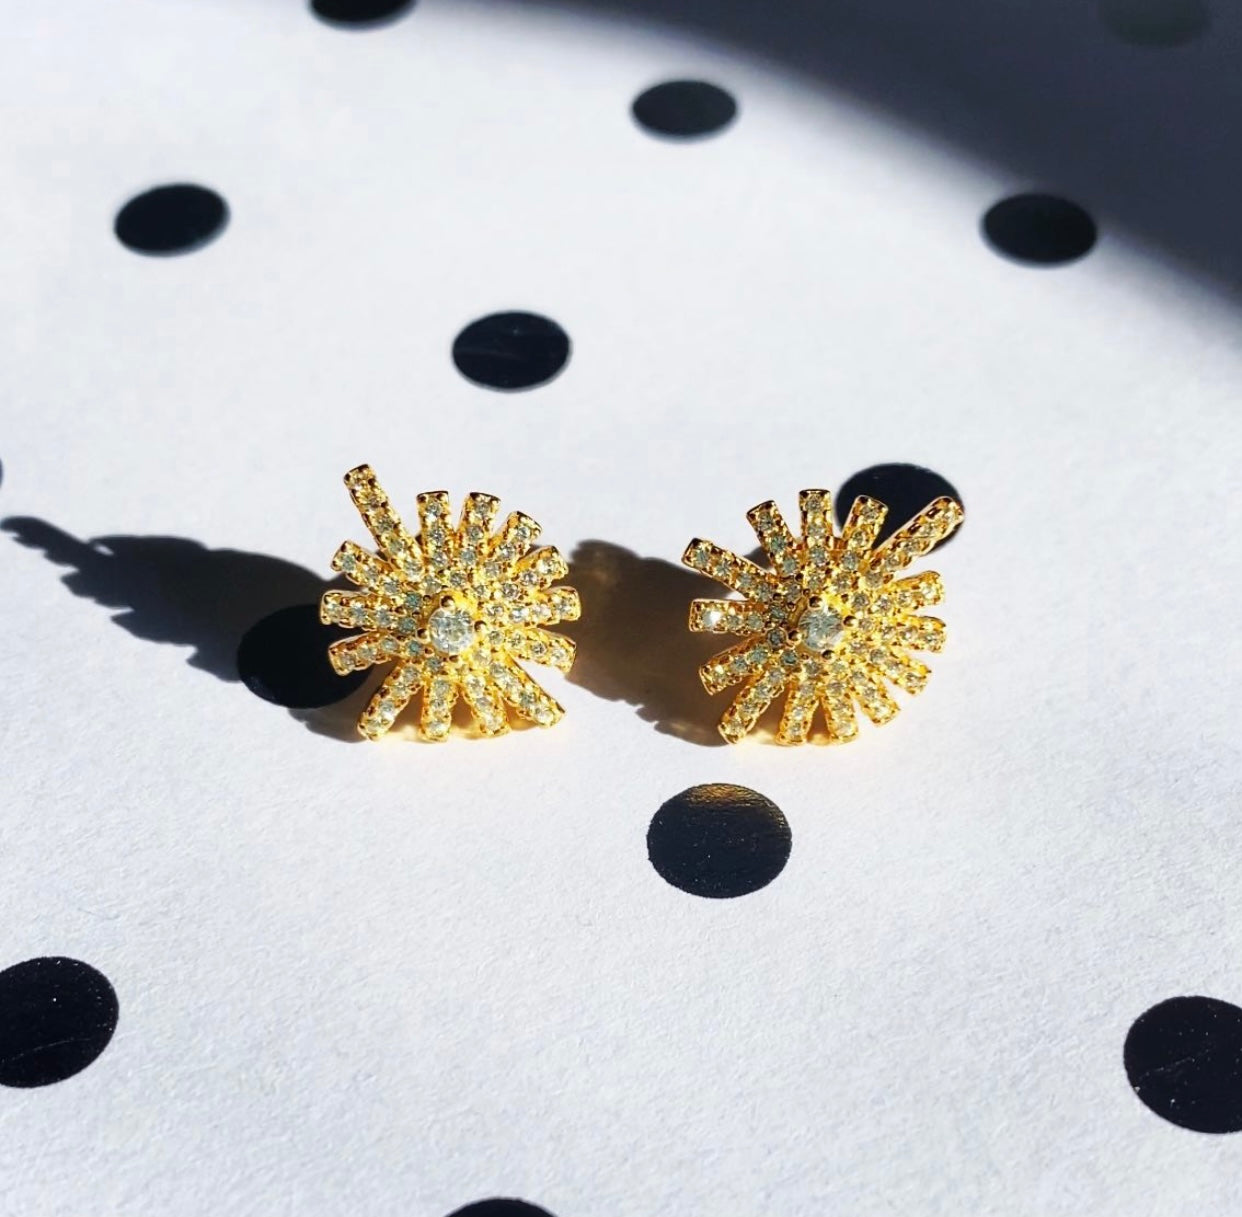 STARBURST STUD EARRINGS - GOLD PLATED